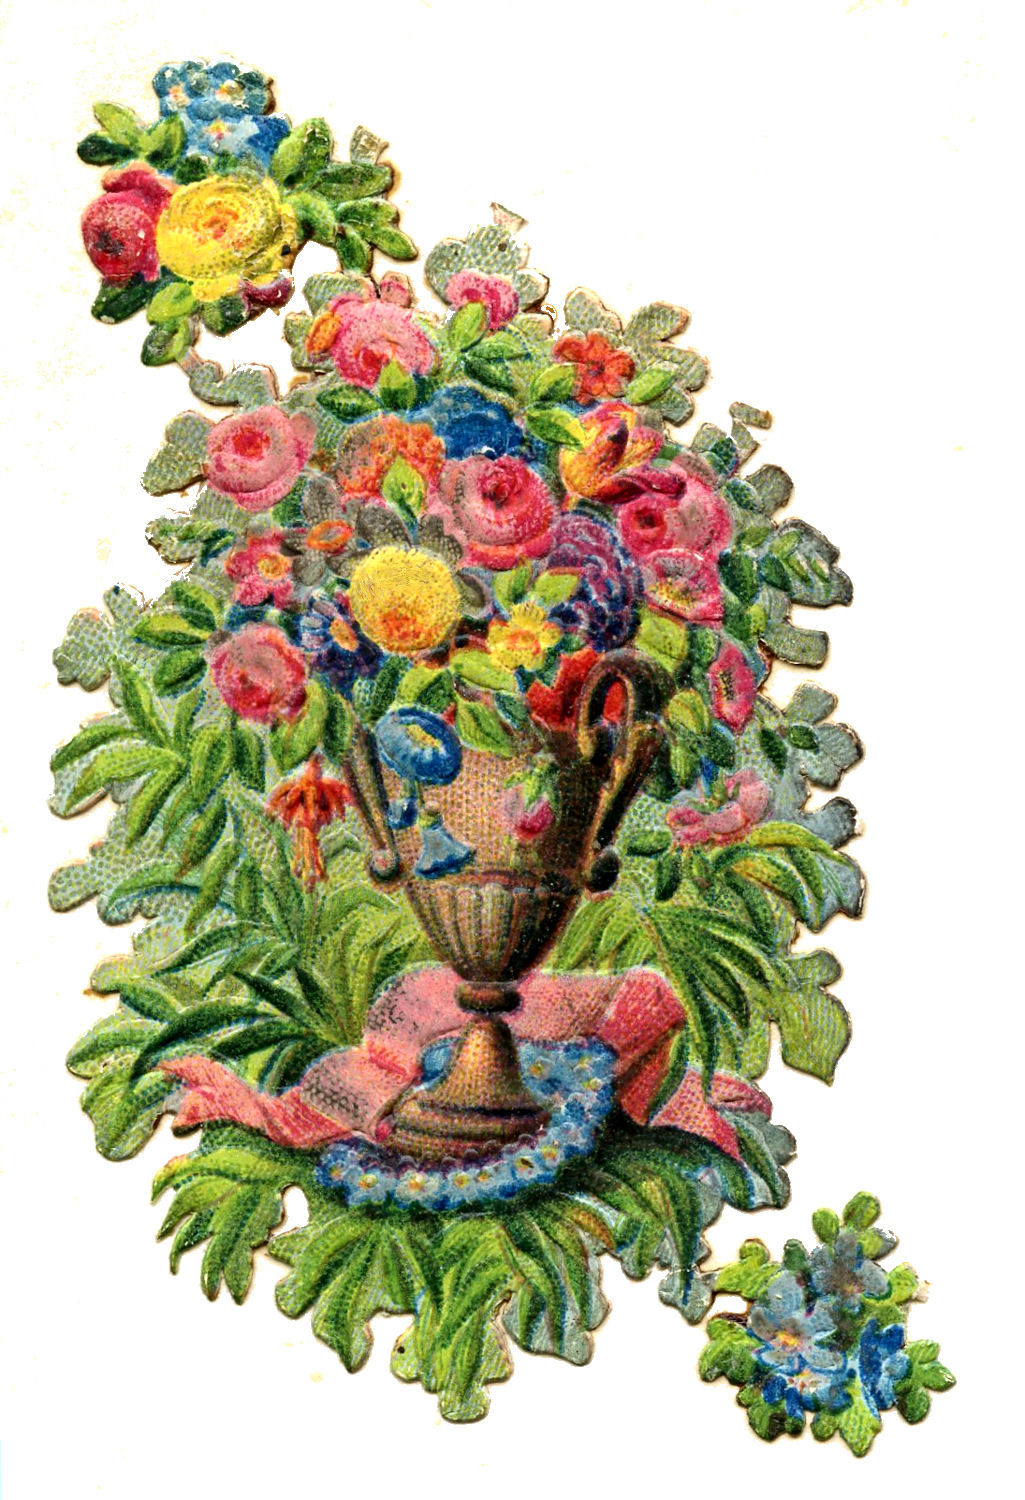 Vintage Clip Art - Scrap Urn with Flowers - The Graphics Fairy